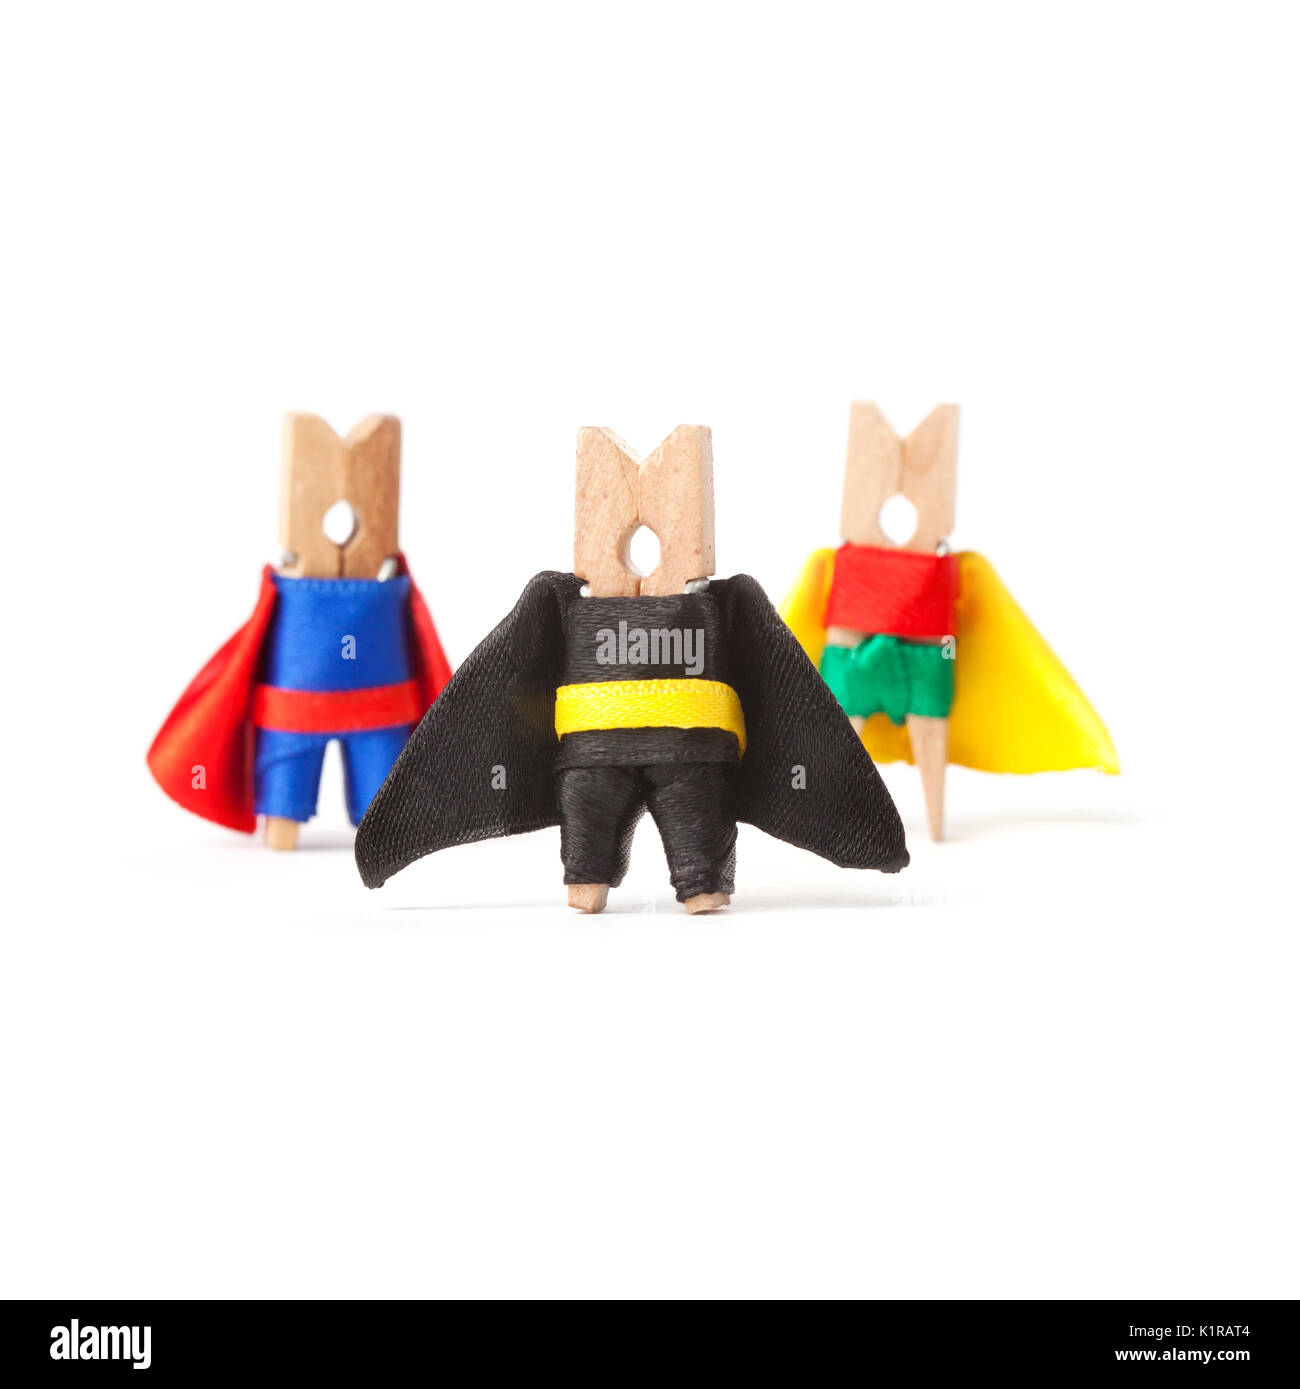 Team building, teamwork and leader concept. Superheroes clothespins. White background - Stock Image